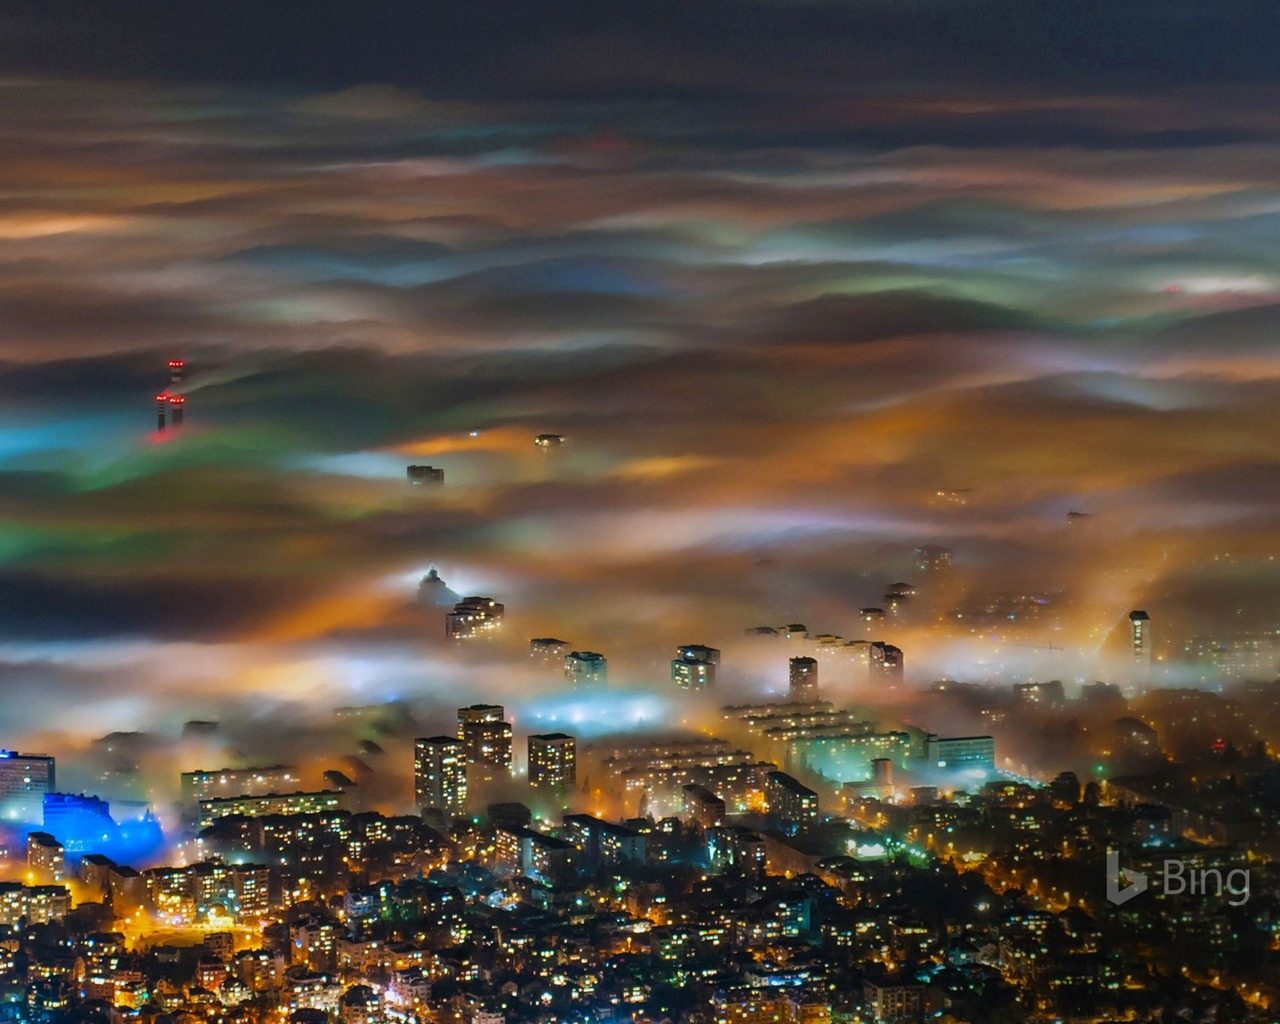 Bulgaria Fog Over Sofia 2016 Bing Desktop Wallpaper